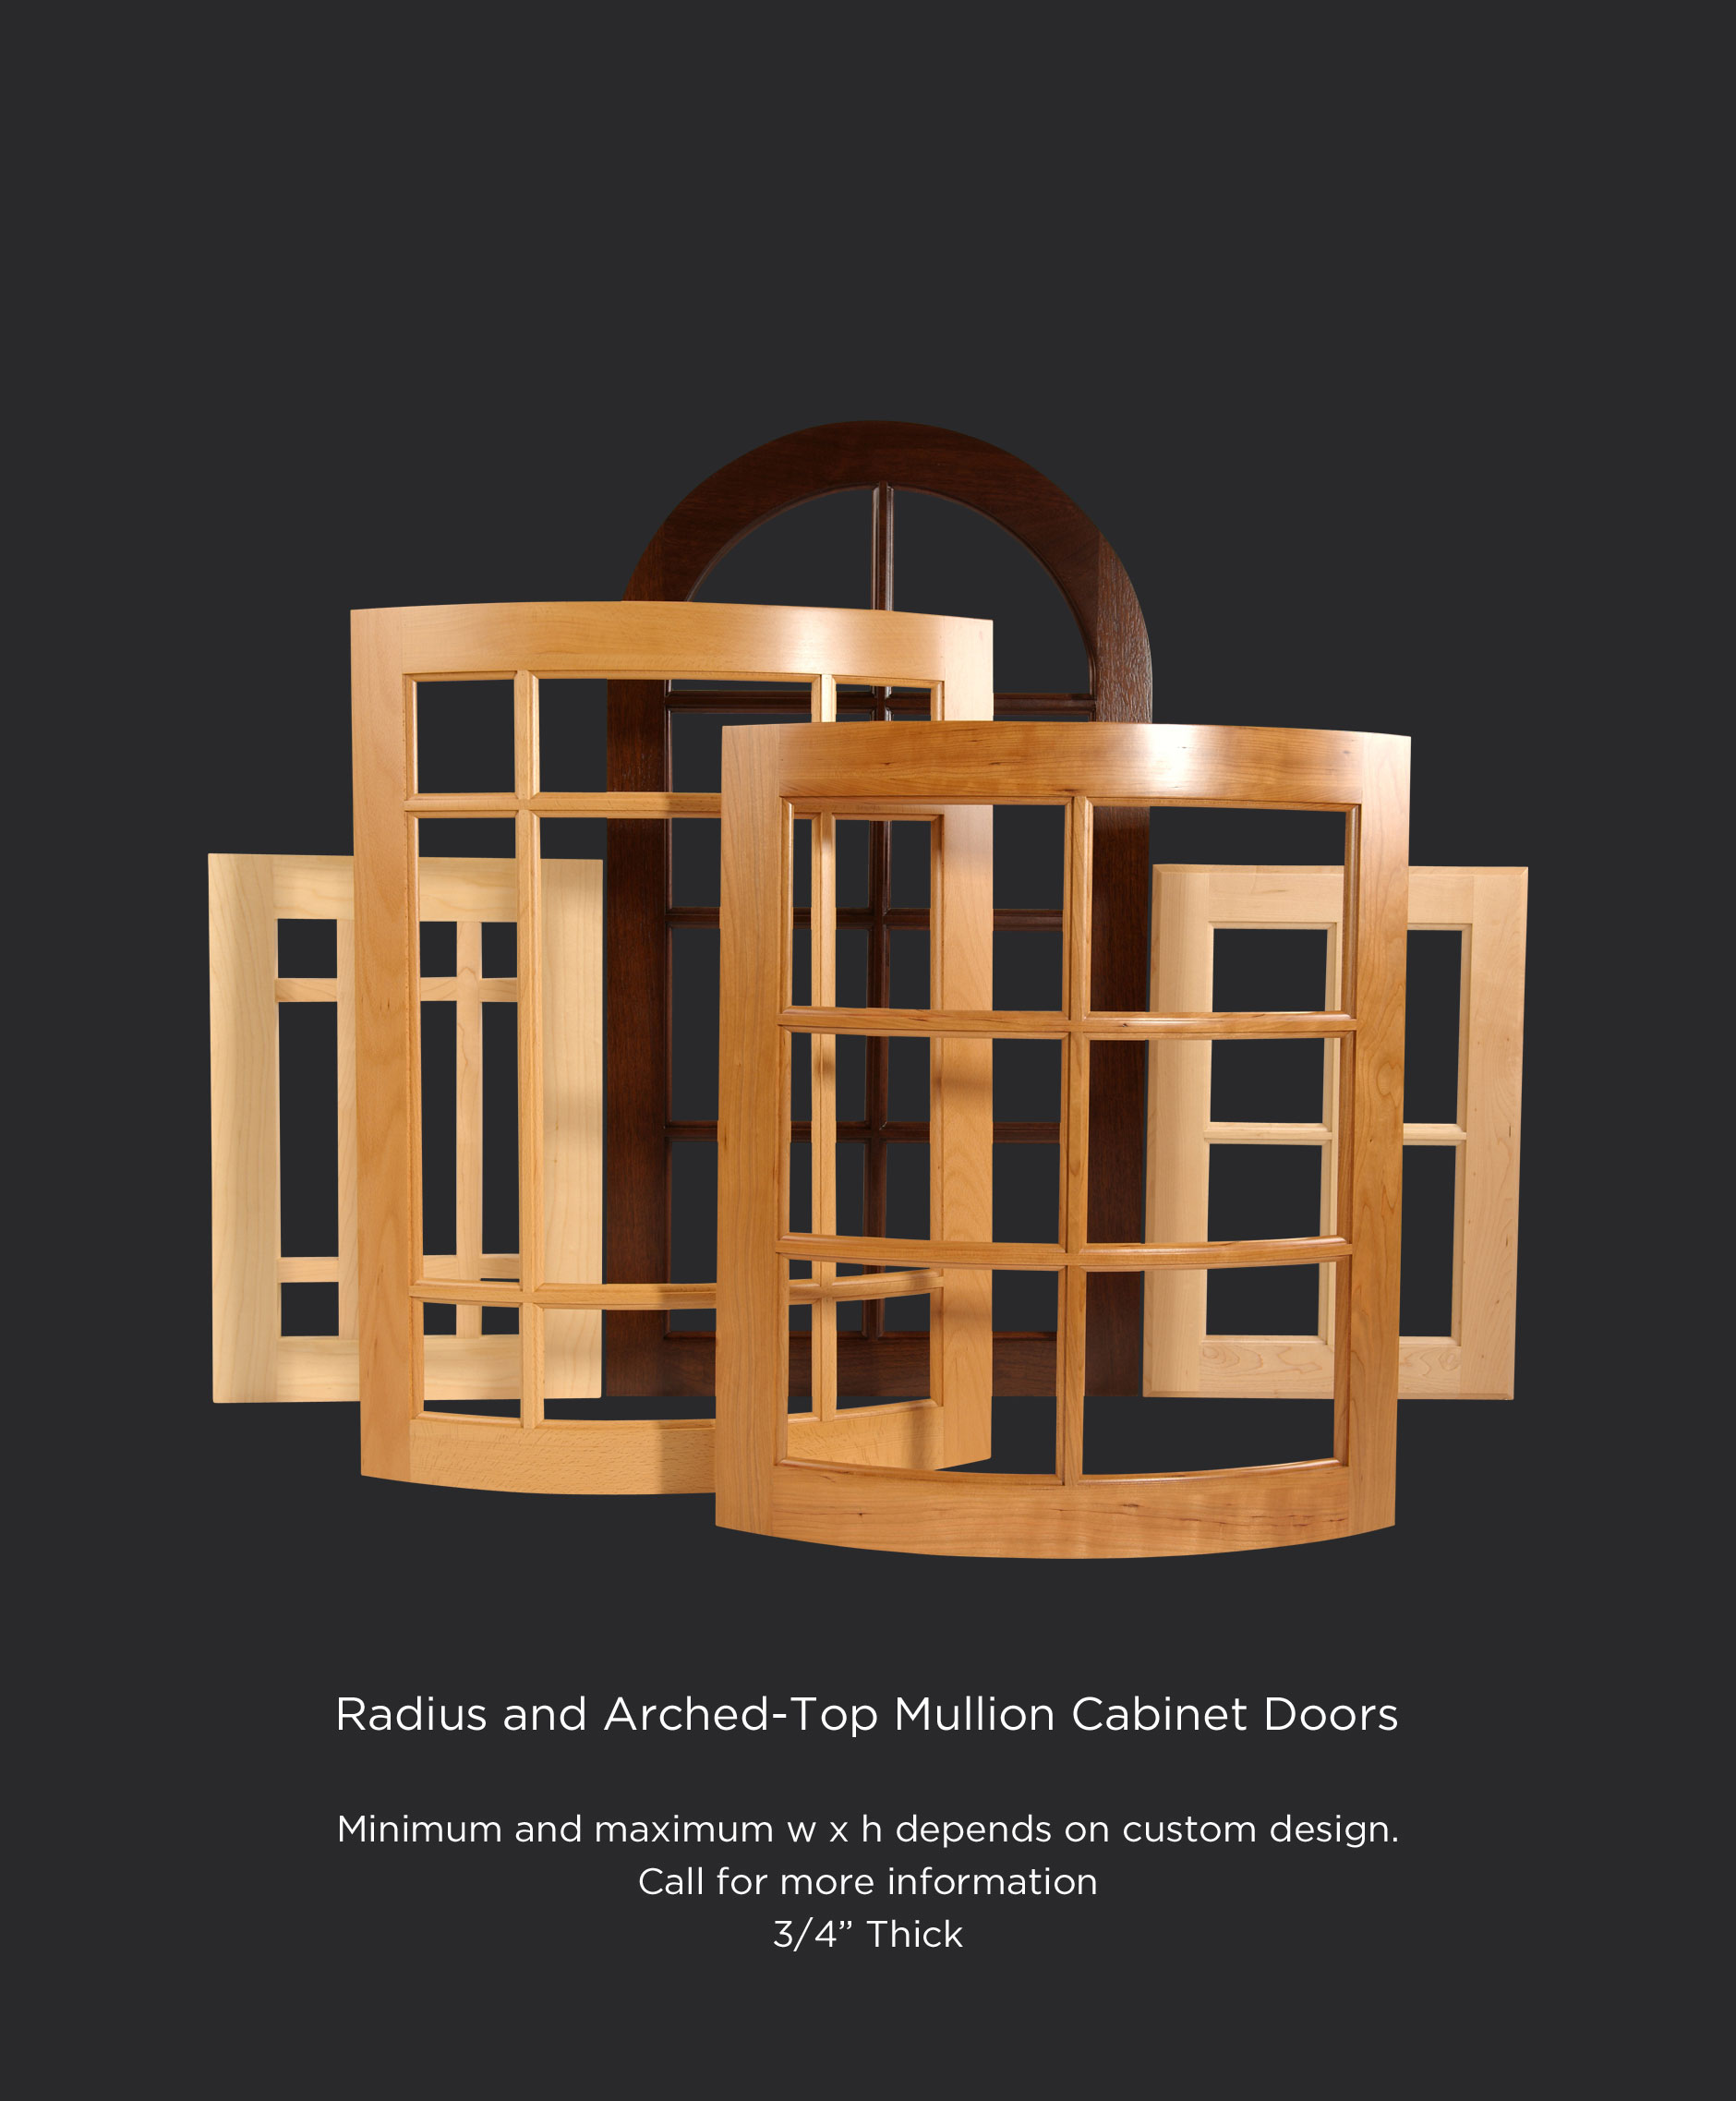 Convex and concave radius mullion cabinet doors